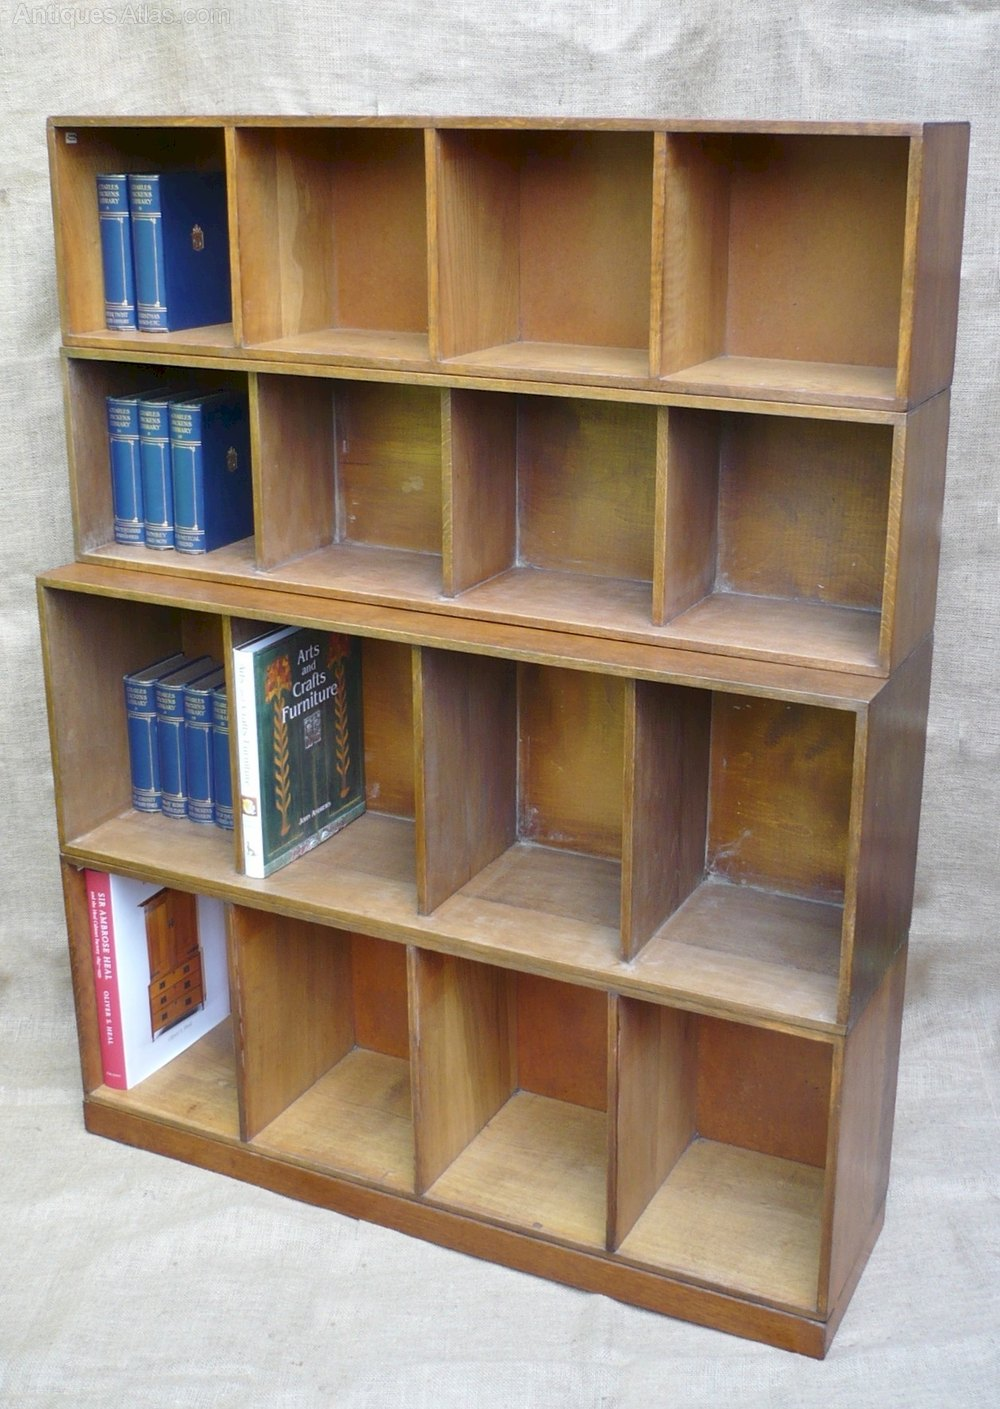 modular com stunning furnishings better shelving bookcases living through design with systems along